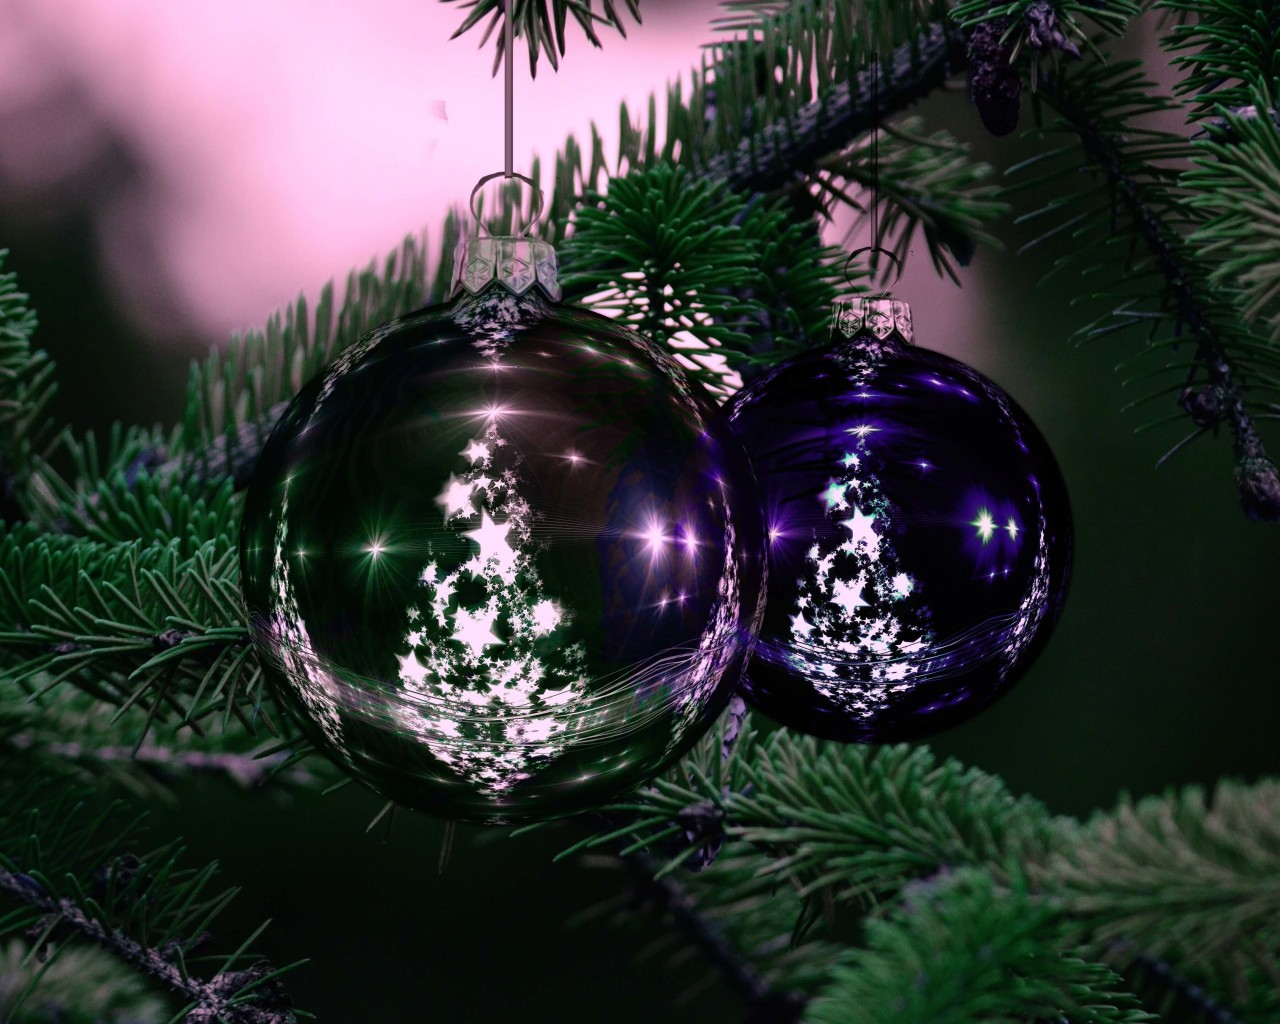 Beautiful Christmas Tree Ornaments Wallpaper for Desktop 1280x1024